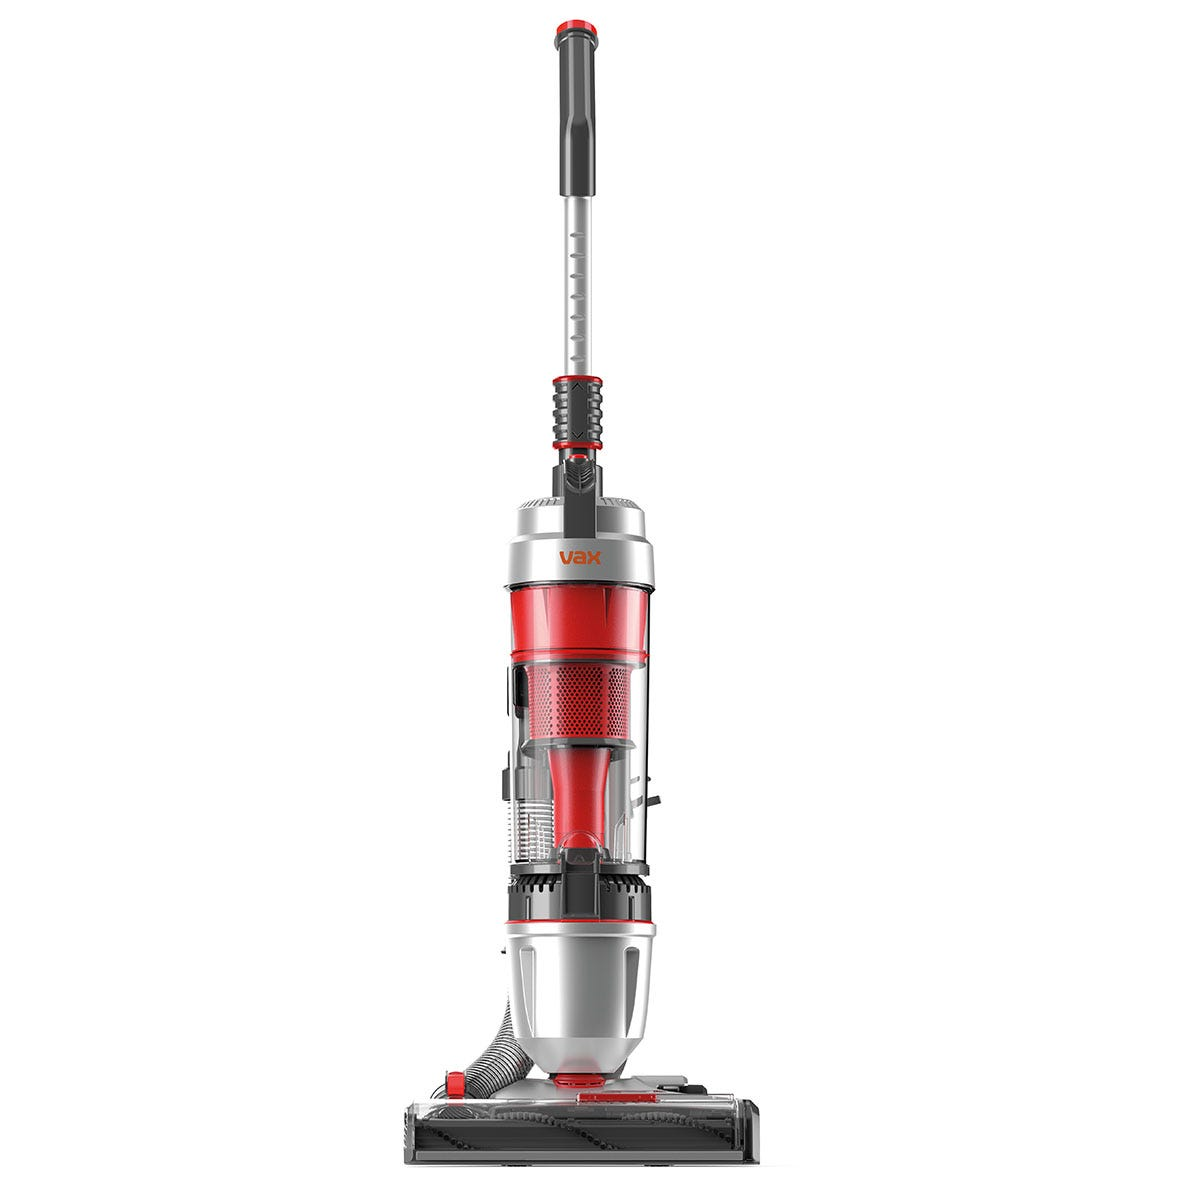 Vax UCUEGEV1 Air Stretch Pro Lightweight Bagless Upright Vacuum Cleaner - Silver and Red